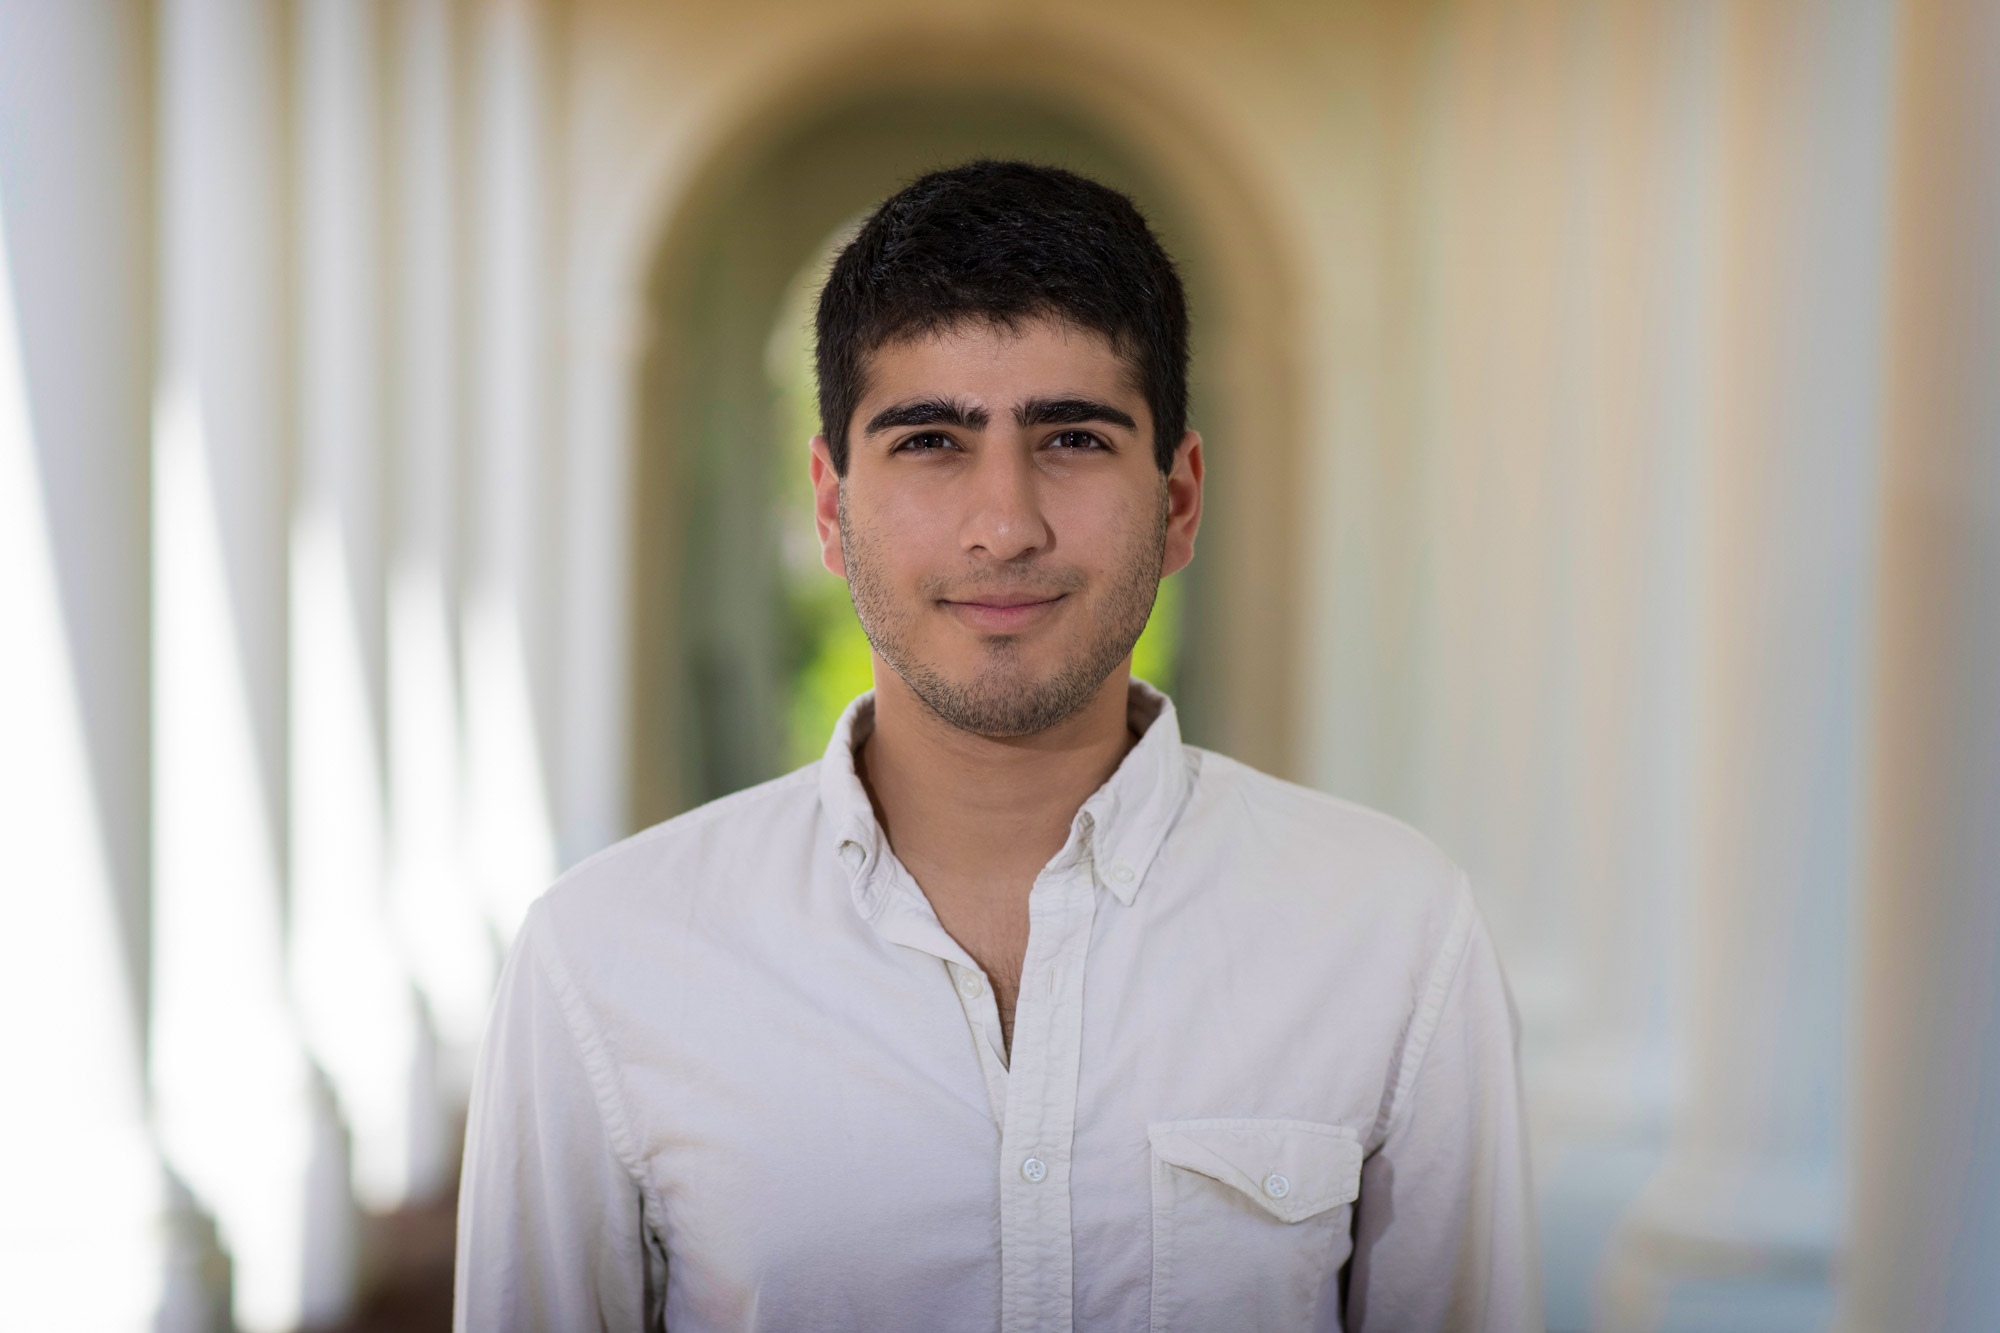 Daniel Naveed Tavakol will research tissue engineering at the École Polytechnique Fédérale de Lausanne in Switzerland. (Photo by Dan Addison, University Communications)